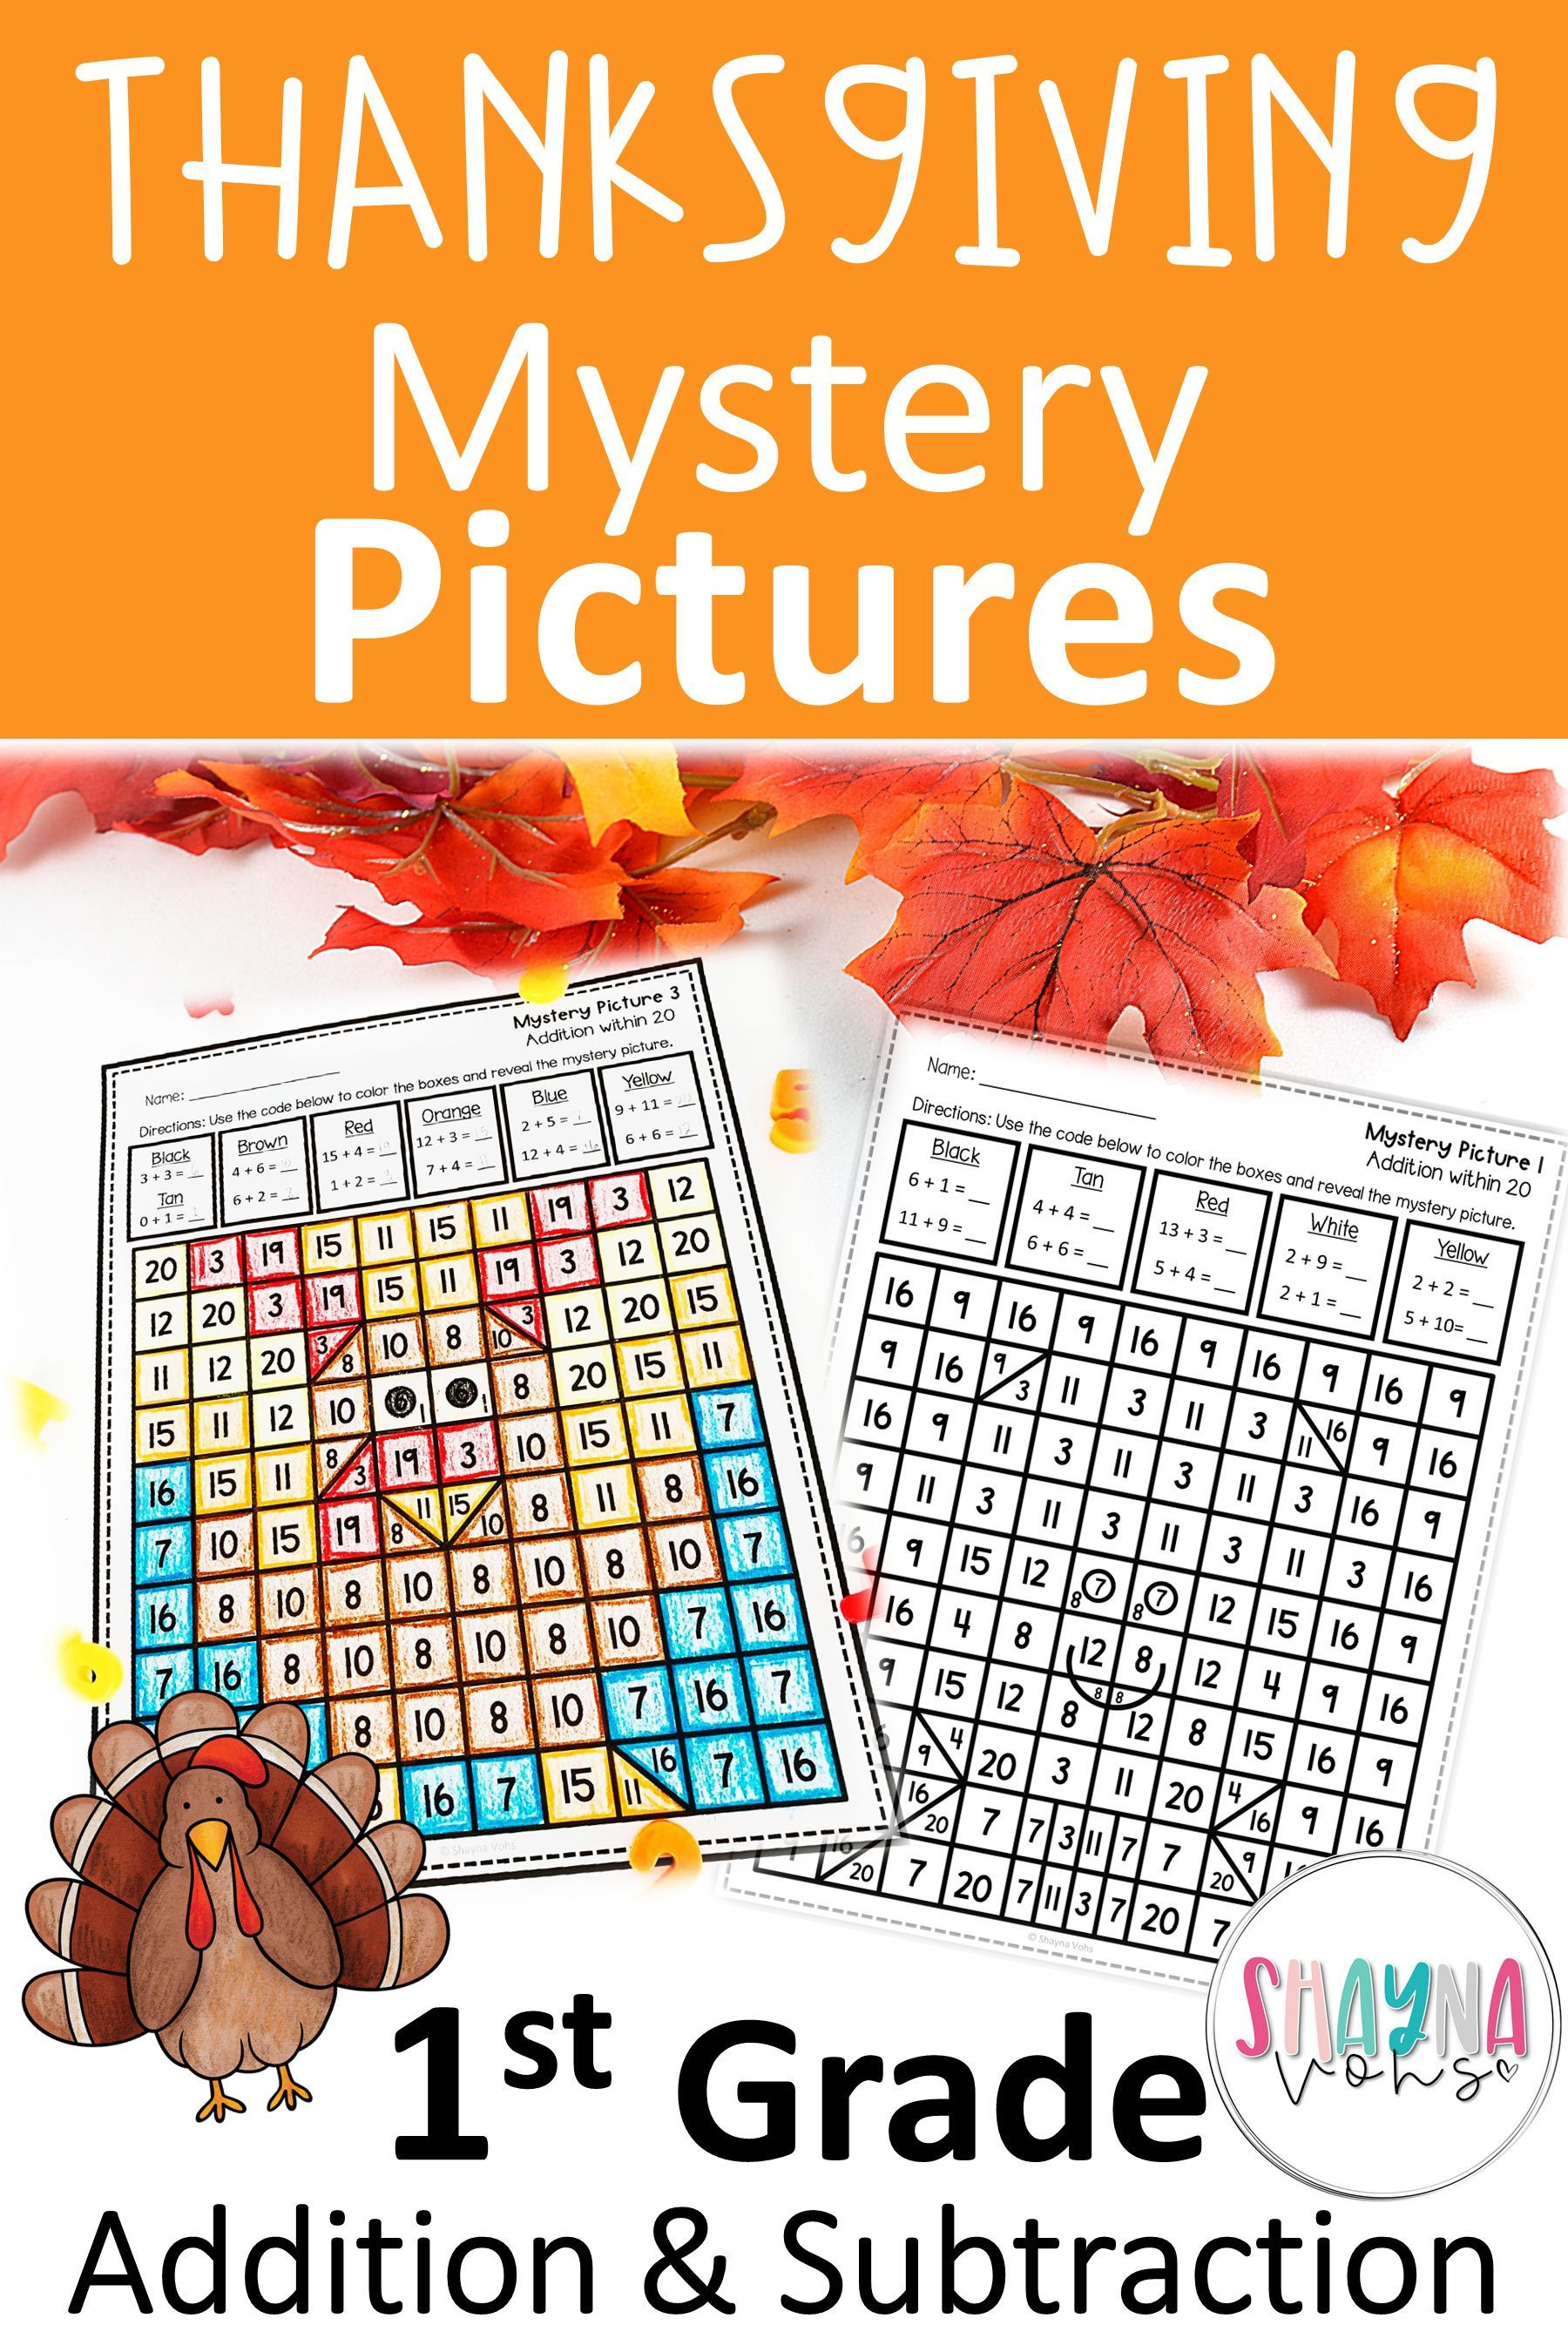 1st Grade Mystery Pictures Addition And Subtraction Thanksgiving Mystery Pictures Addition And Subtraction Thanksgiving Math Activities [ 2700 x 1800 Pixel ]